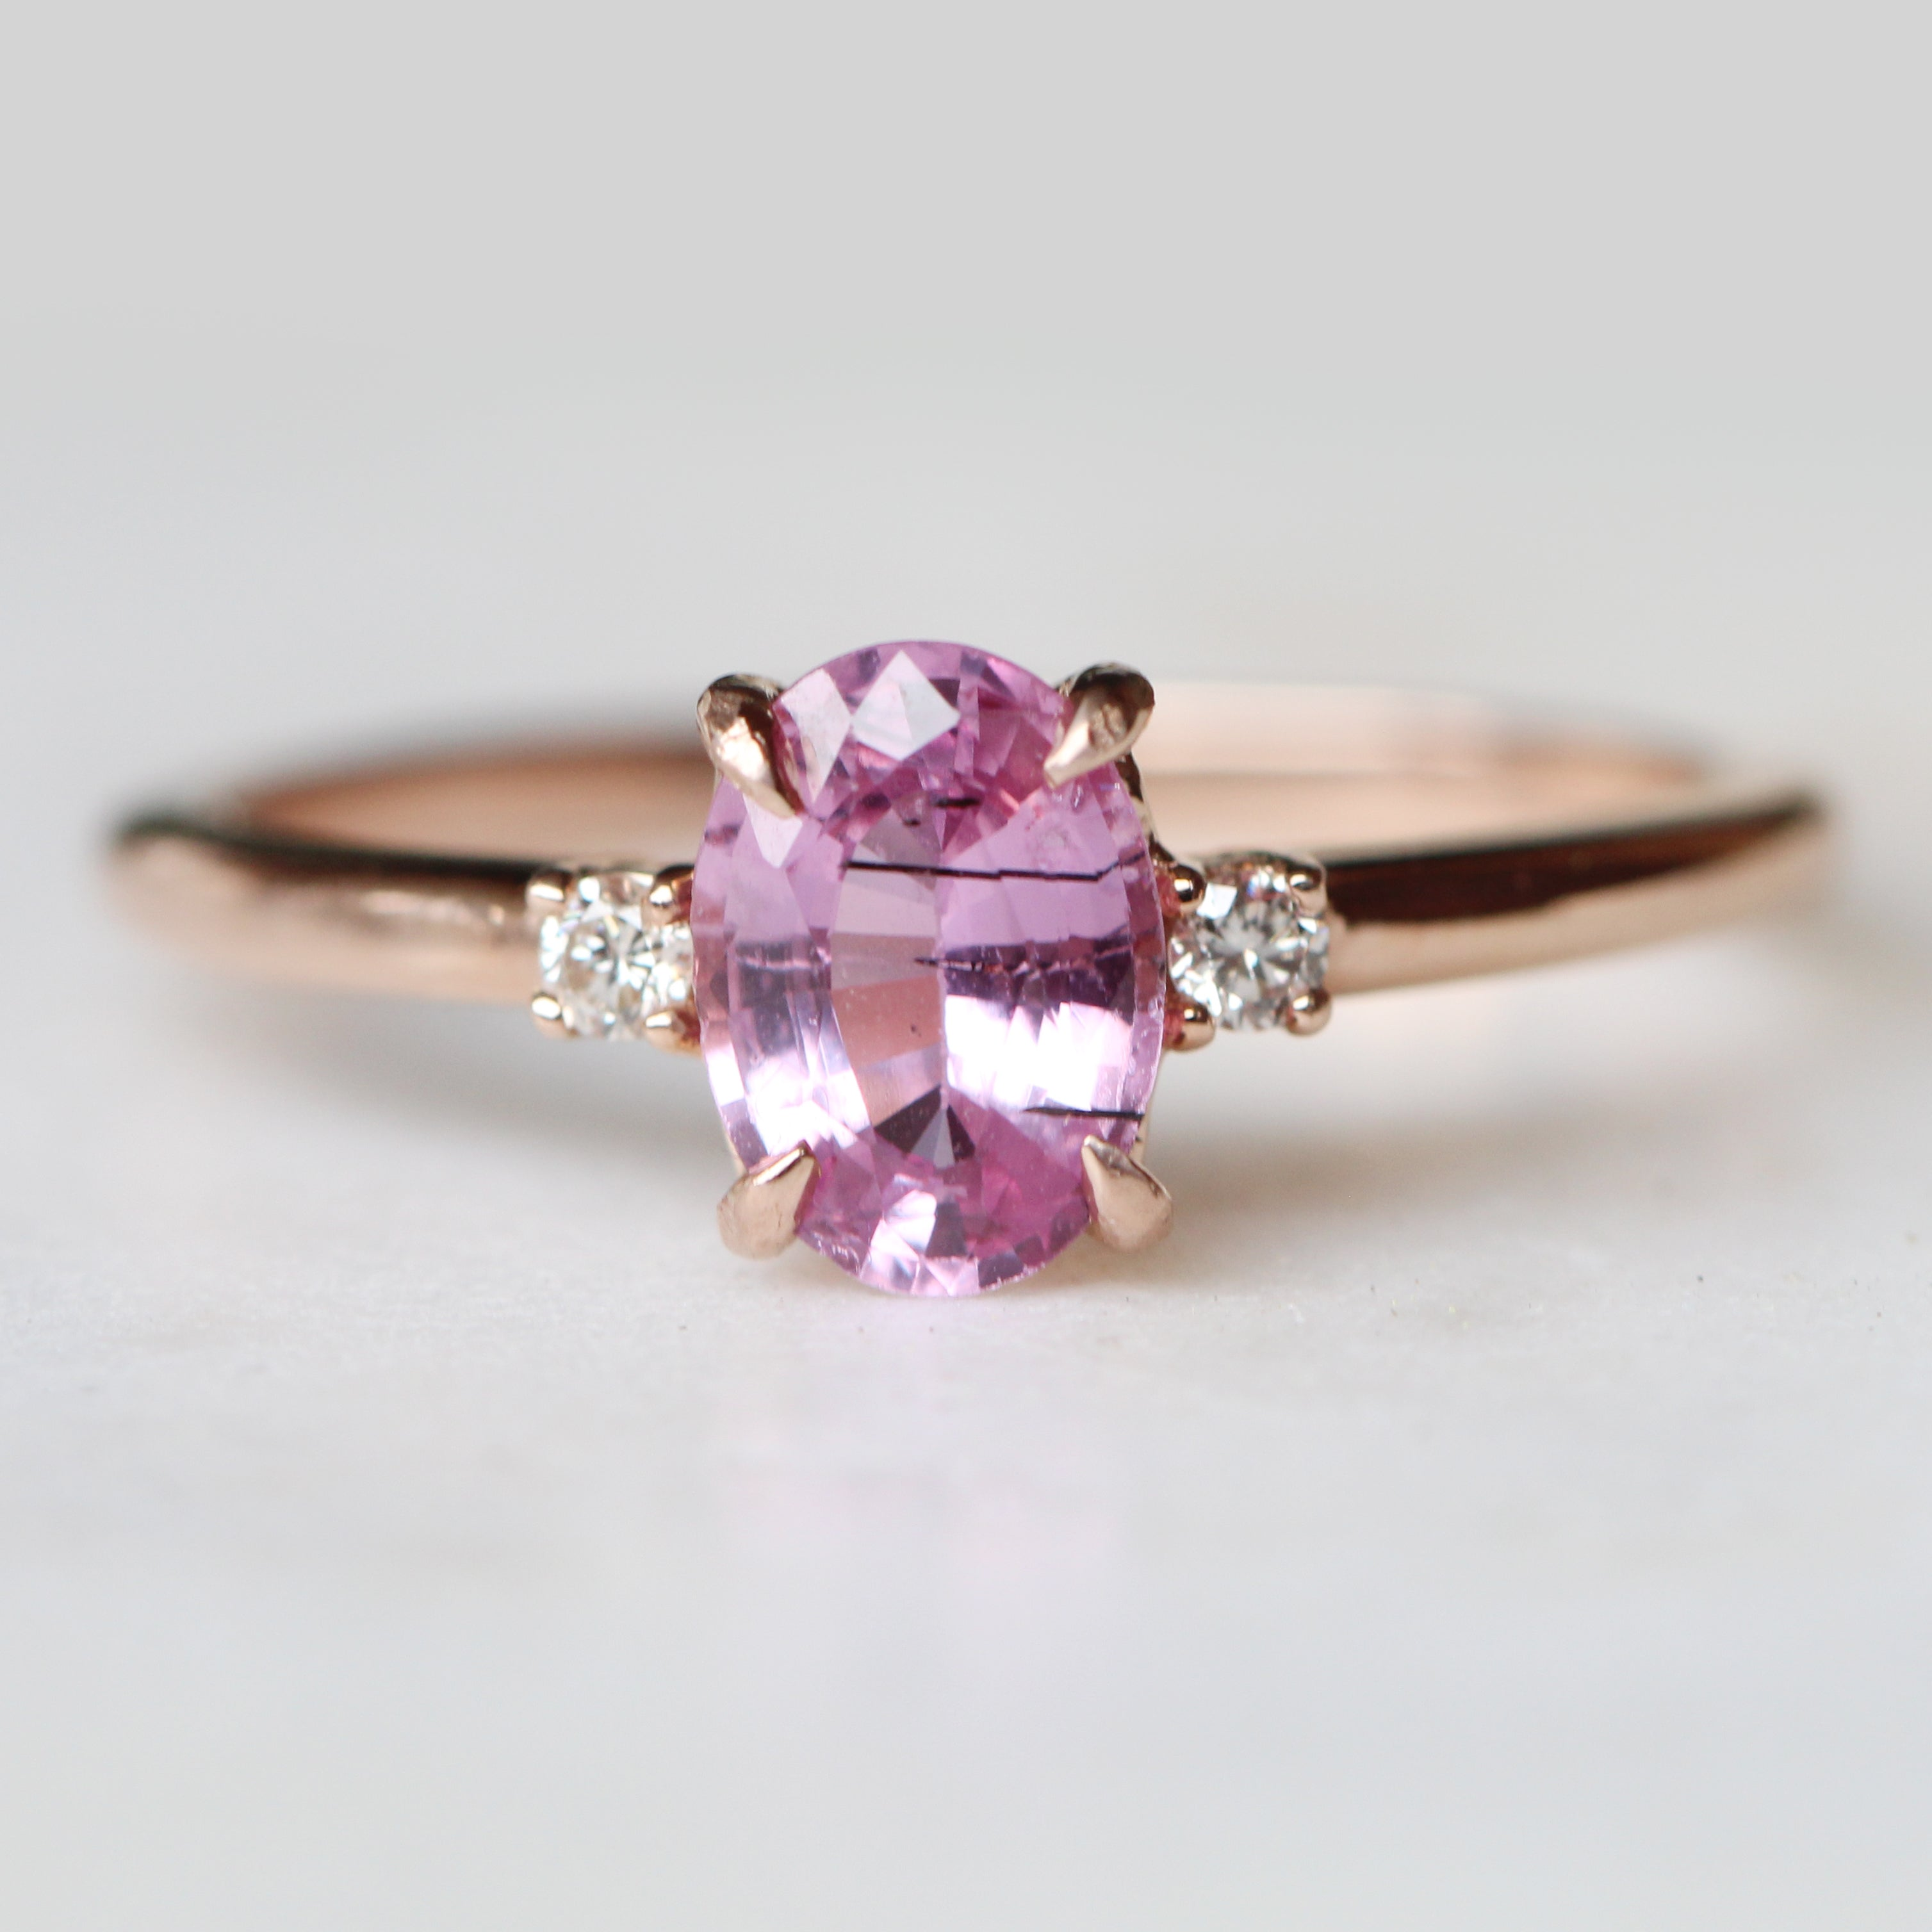 Terra Ring with 1.05 carat pink sapphire with black needle inclusions and white diamonds in 10k rose gold - ready to size and ship - Salt & Pepper Celestial Diamond Engagement Rings and Wedding Bands  by Midwinter Co.